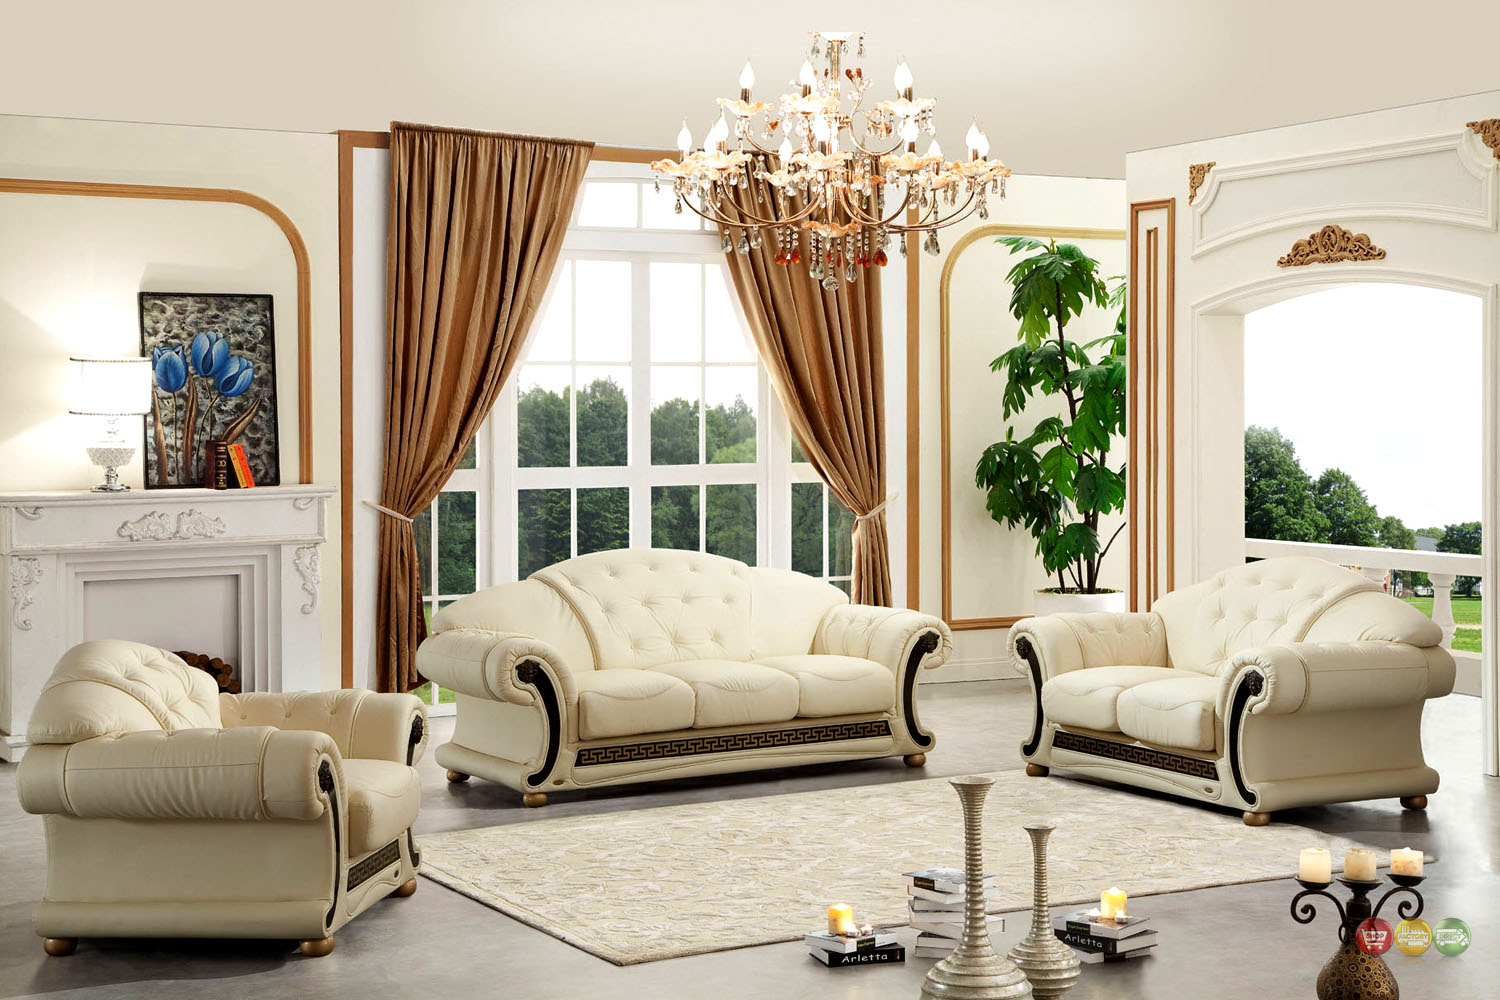 Versace Cleopatra Cream Italian Top Grain Leather Beige Living Room Sofa Set - Versace Furniture EBay